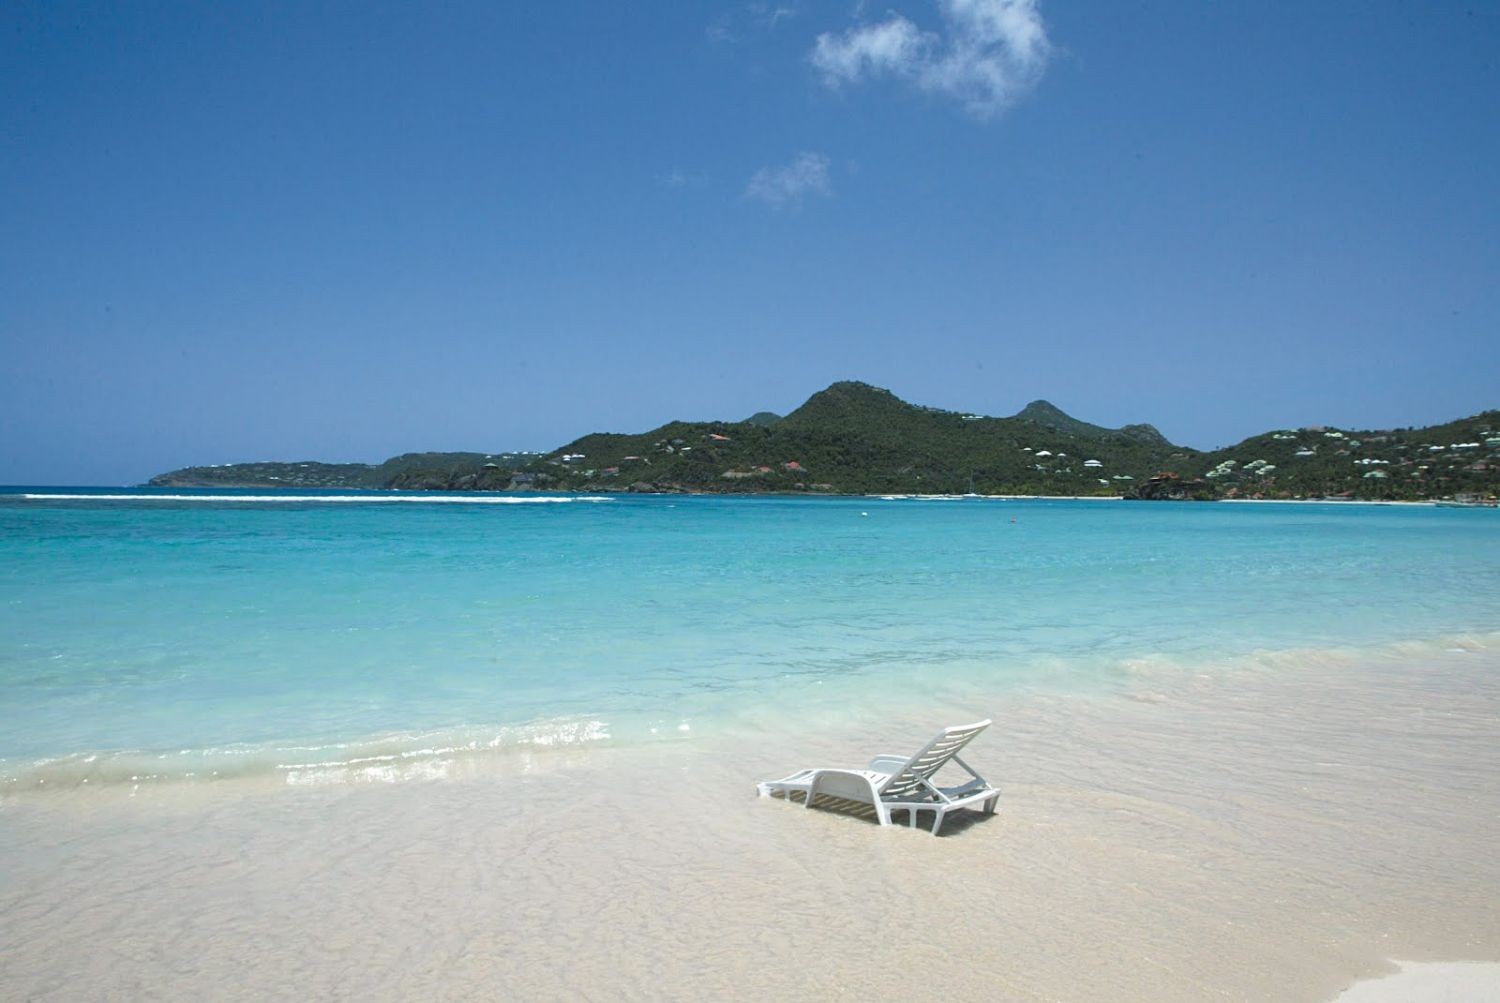 gay st. barth guide - gay bars, clubs, hotels, reviews and deals